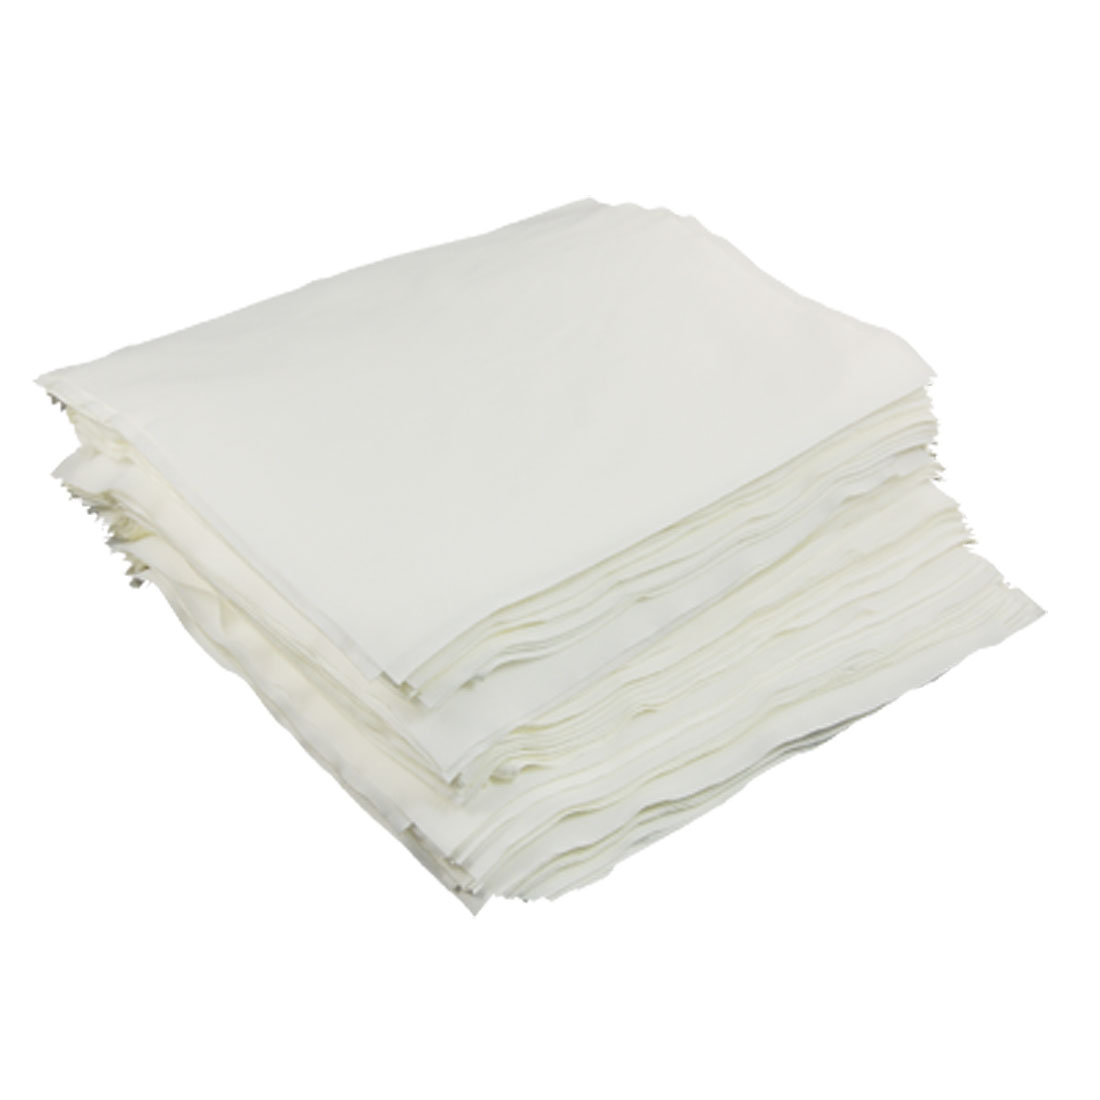 "150 Pcs 8.5"" x 8"" Dustless White Cleanroom Wiper Cloth"